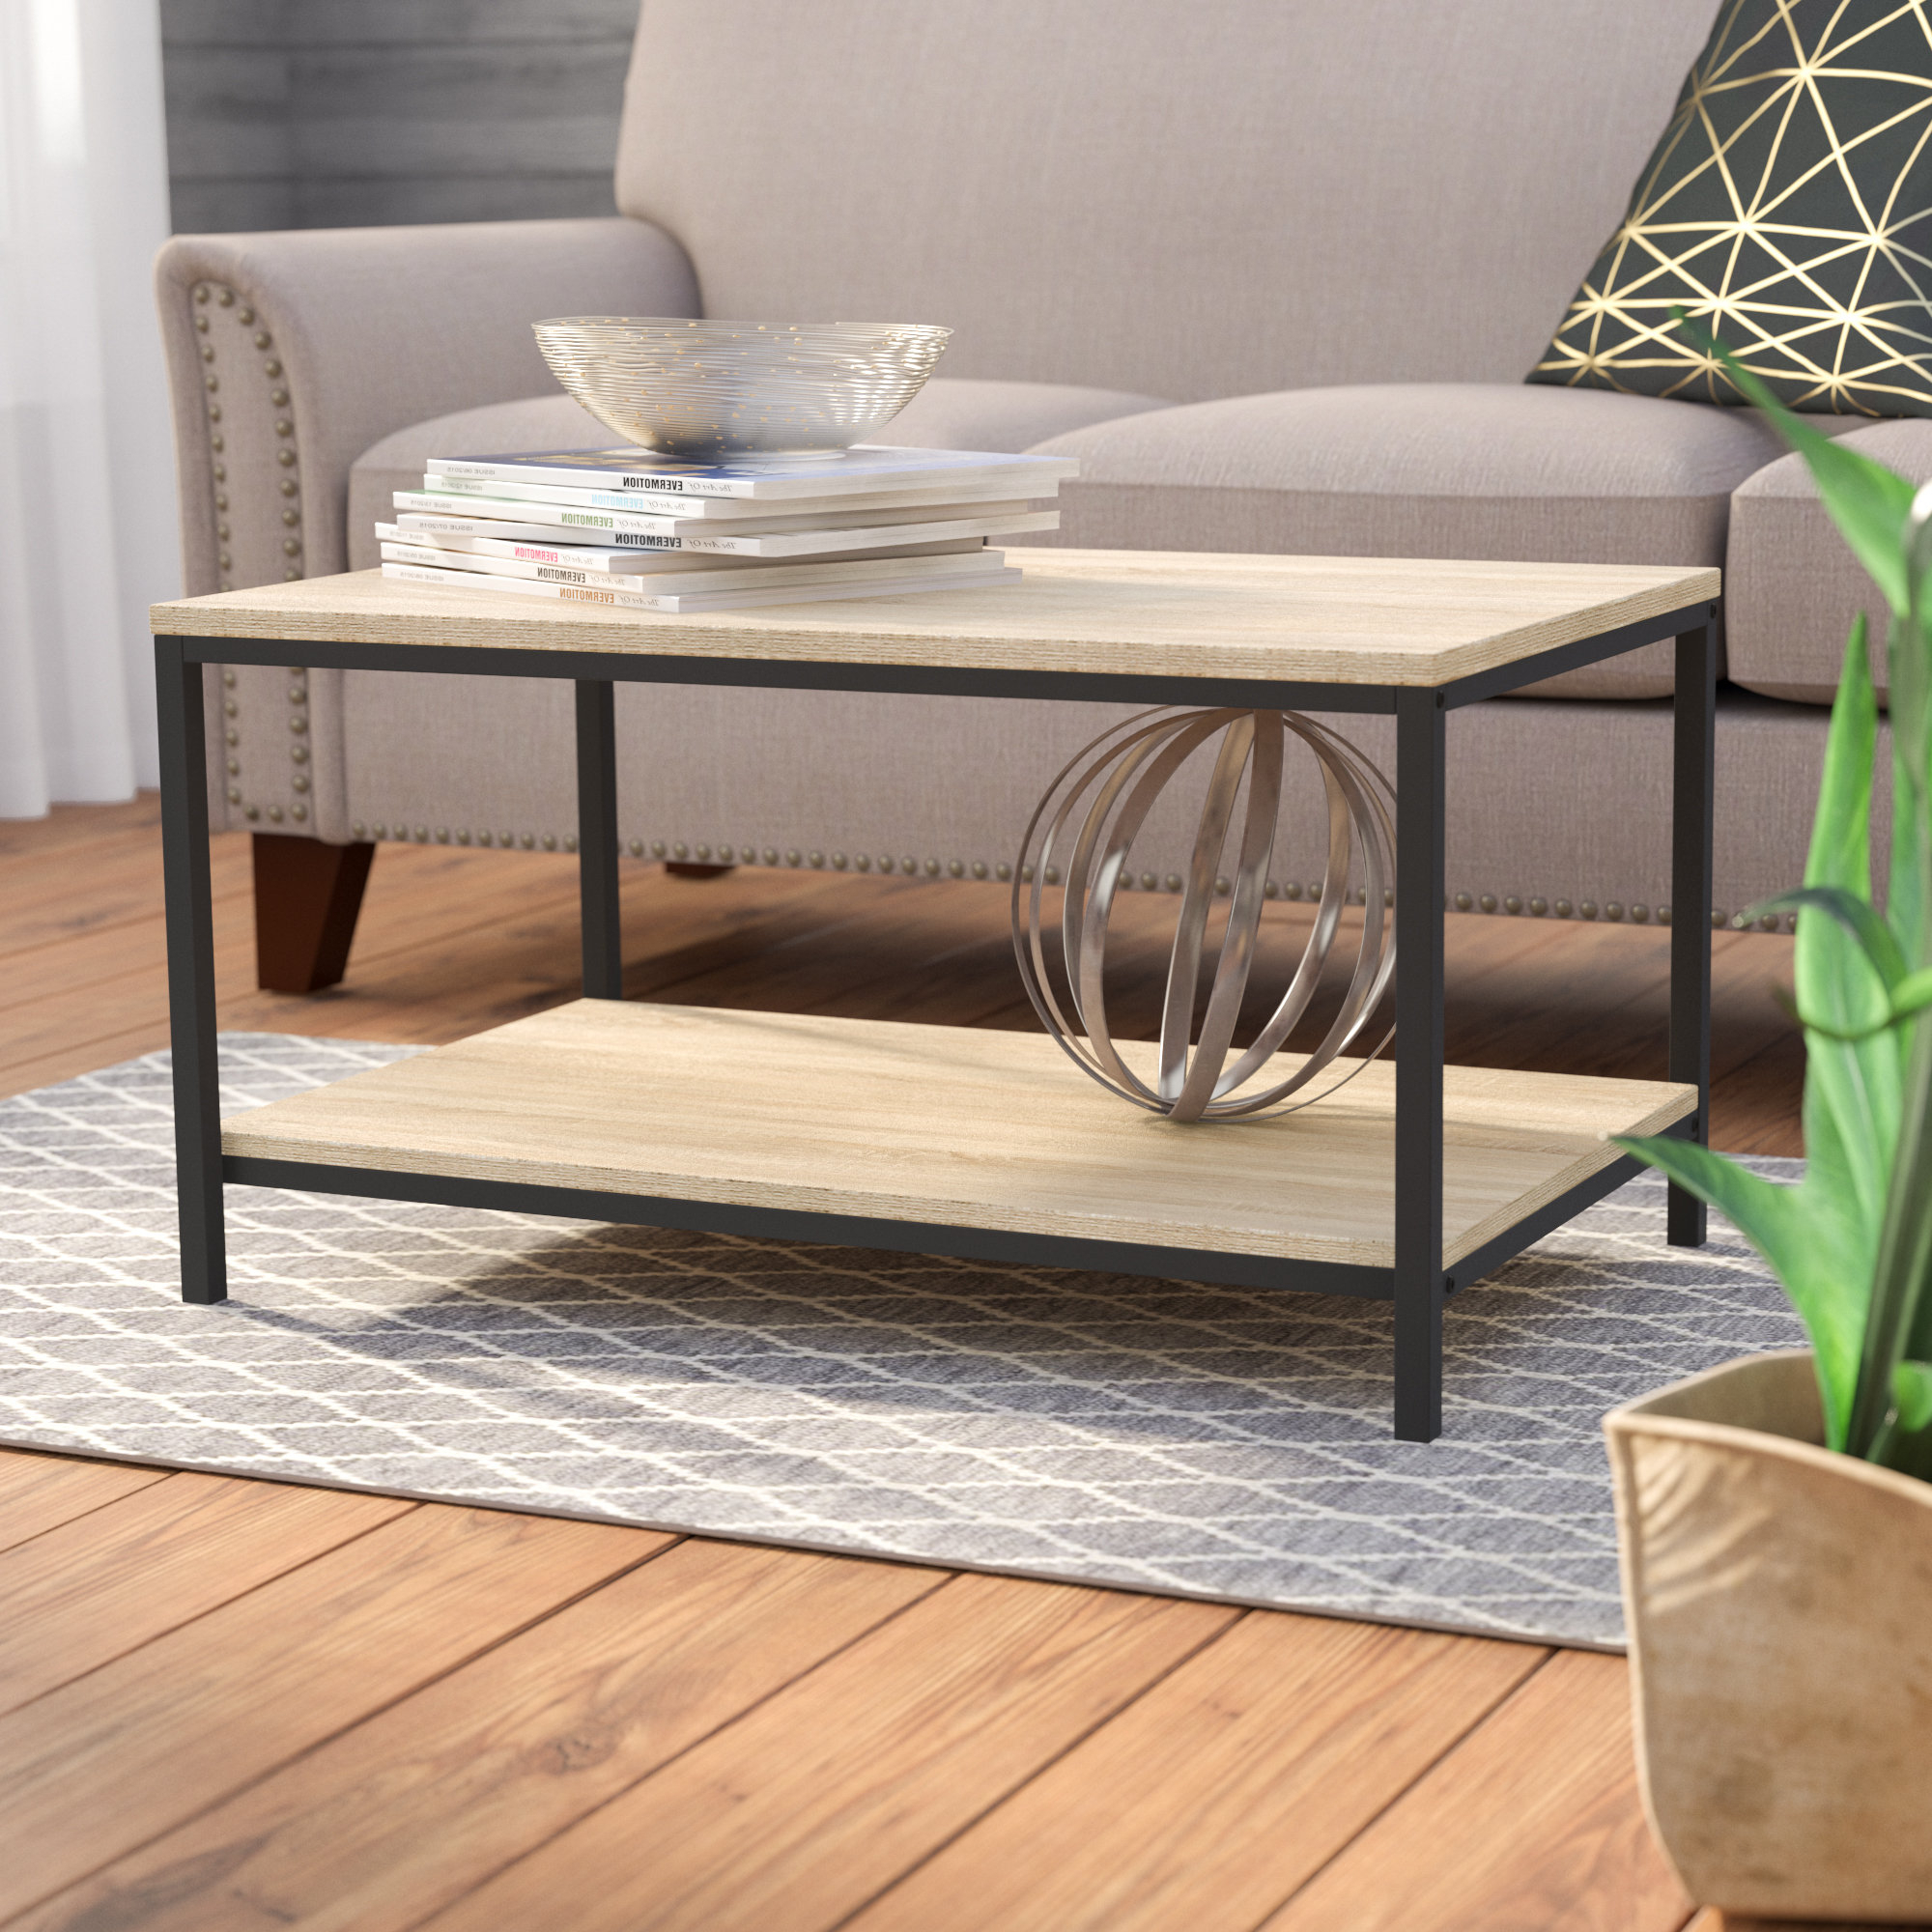 Recent Large Scale Chinese Farmhouse Coffee Tables Pertaining To Laurel Foundry Modern Farmhouse Ermont Coffee Table & Reviews (View 10 of 20)